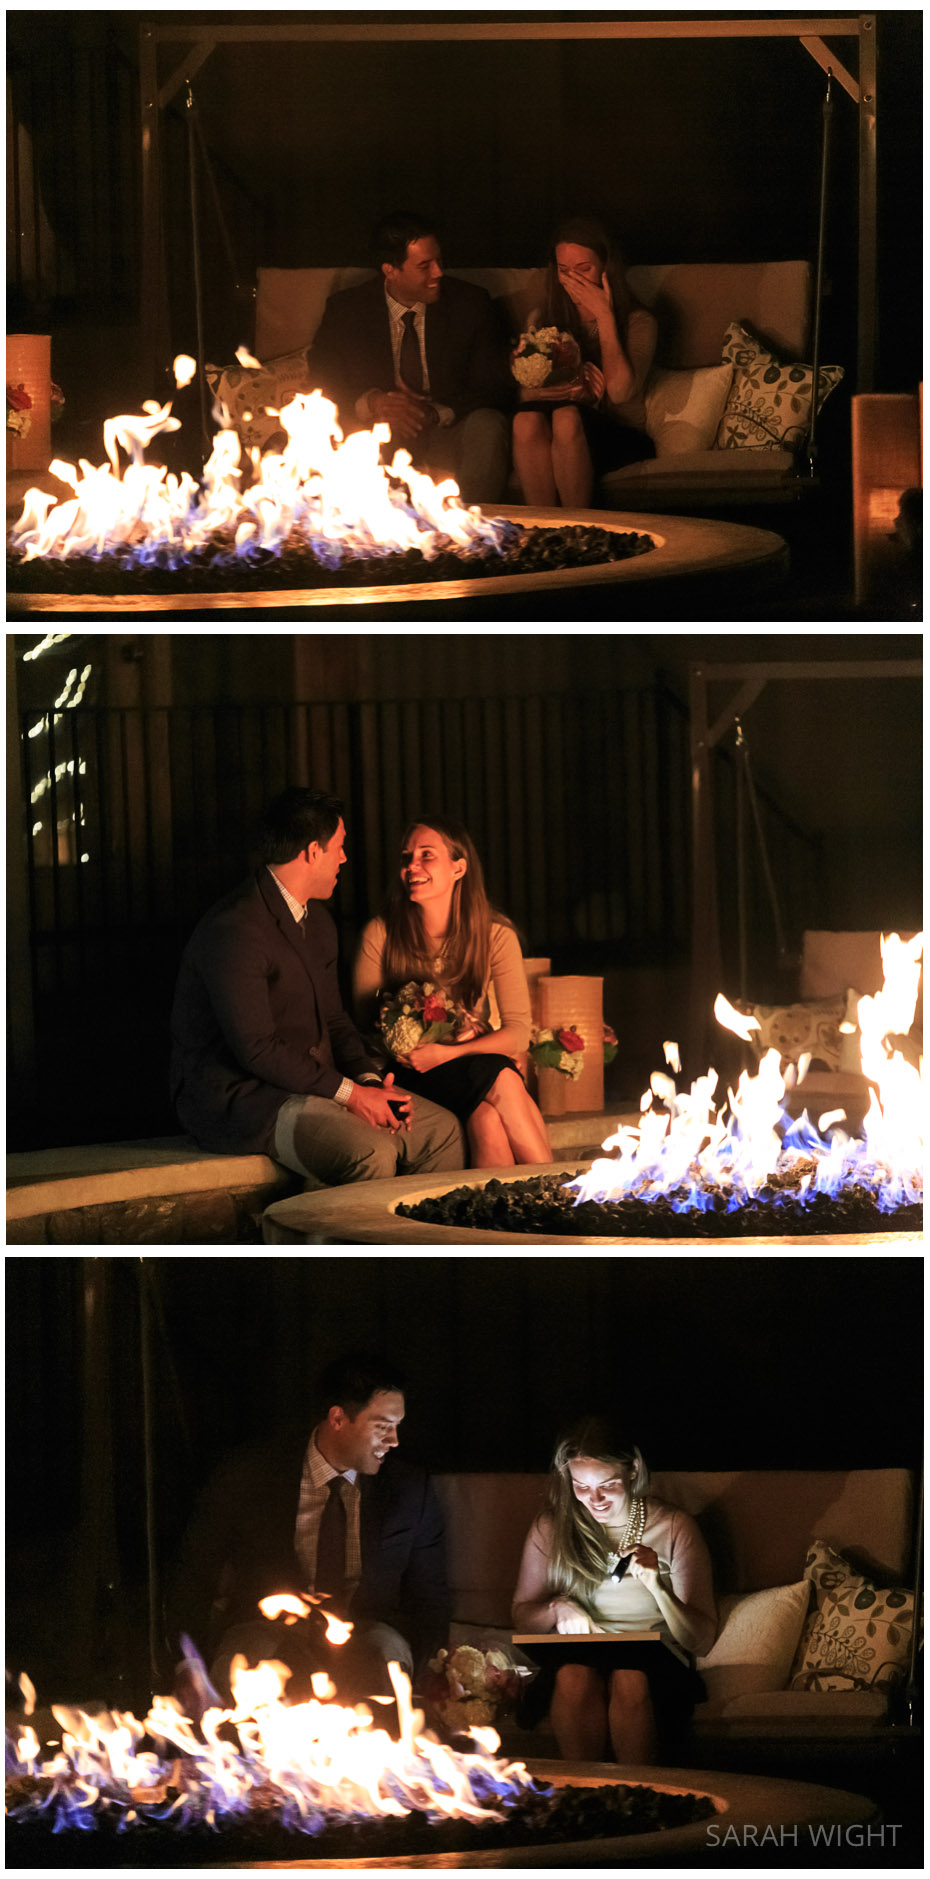 1 Utah Romantic Fire light Secret Proposal Photographer.jpg